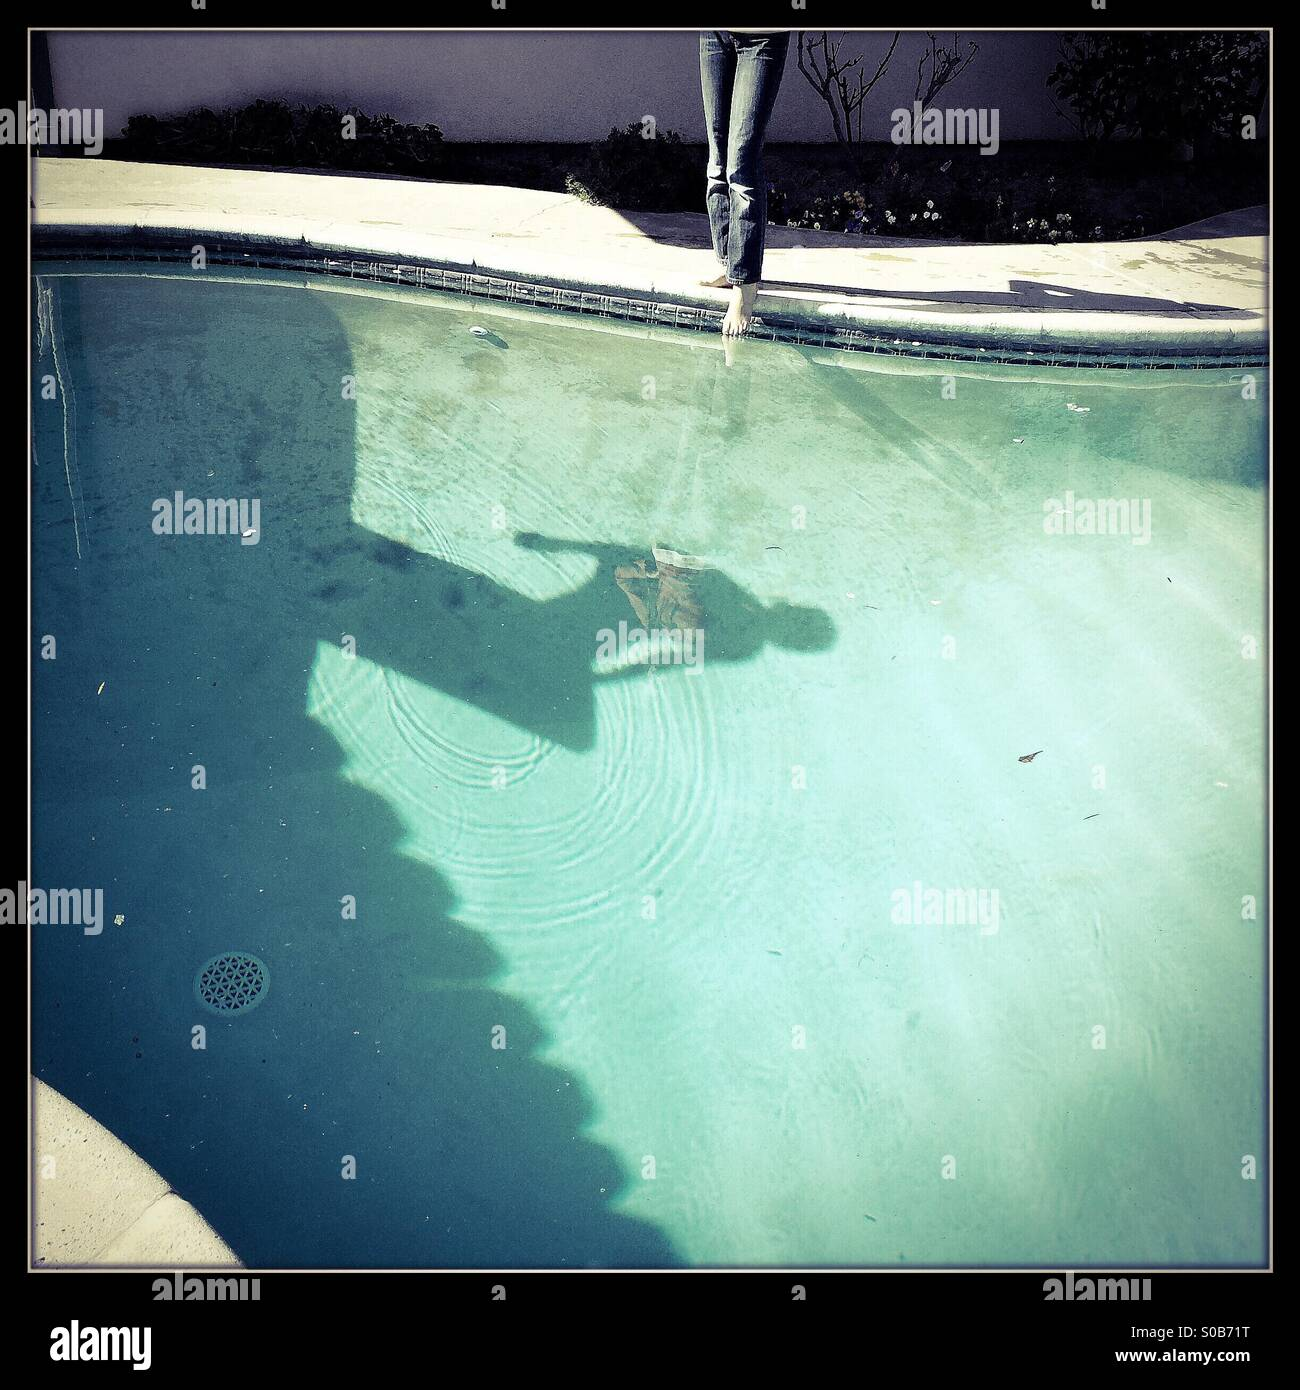 A shadow on the bottom of a swimming pool of a person diving off of a diving board. - Stock Image